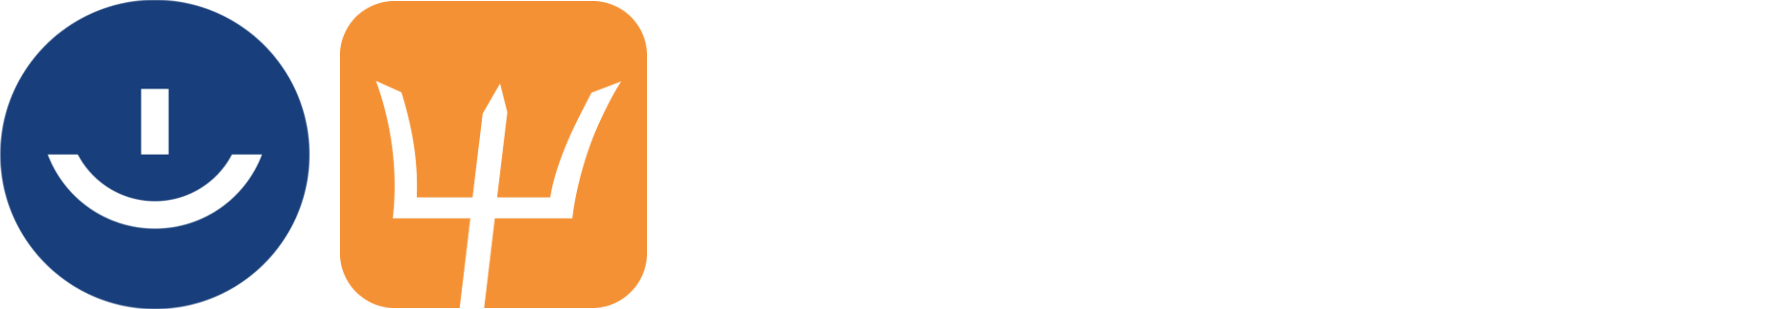 Kongress Digitalisierung